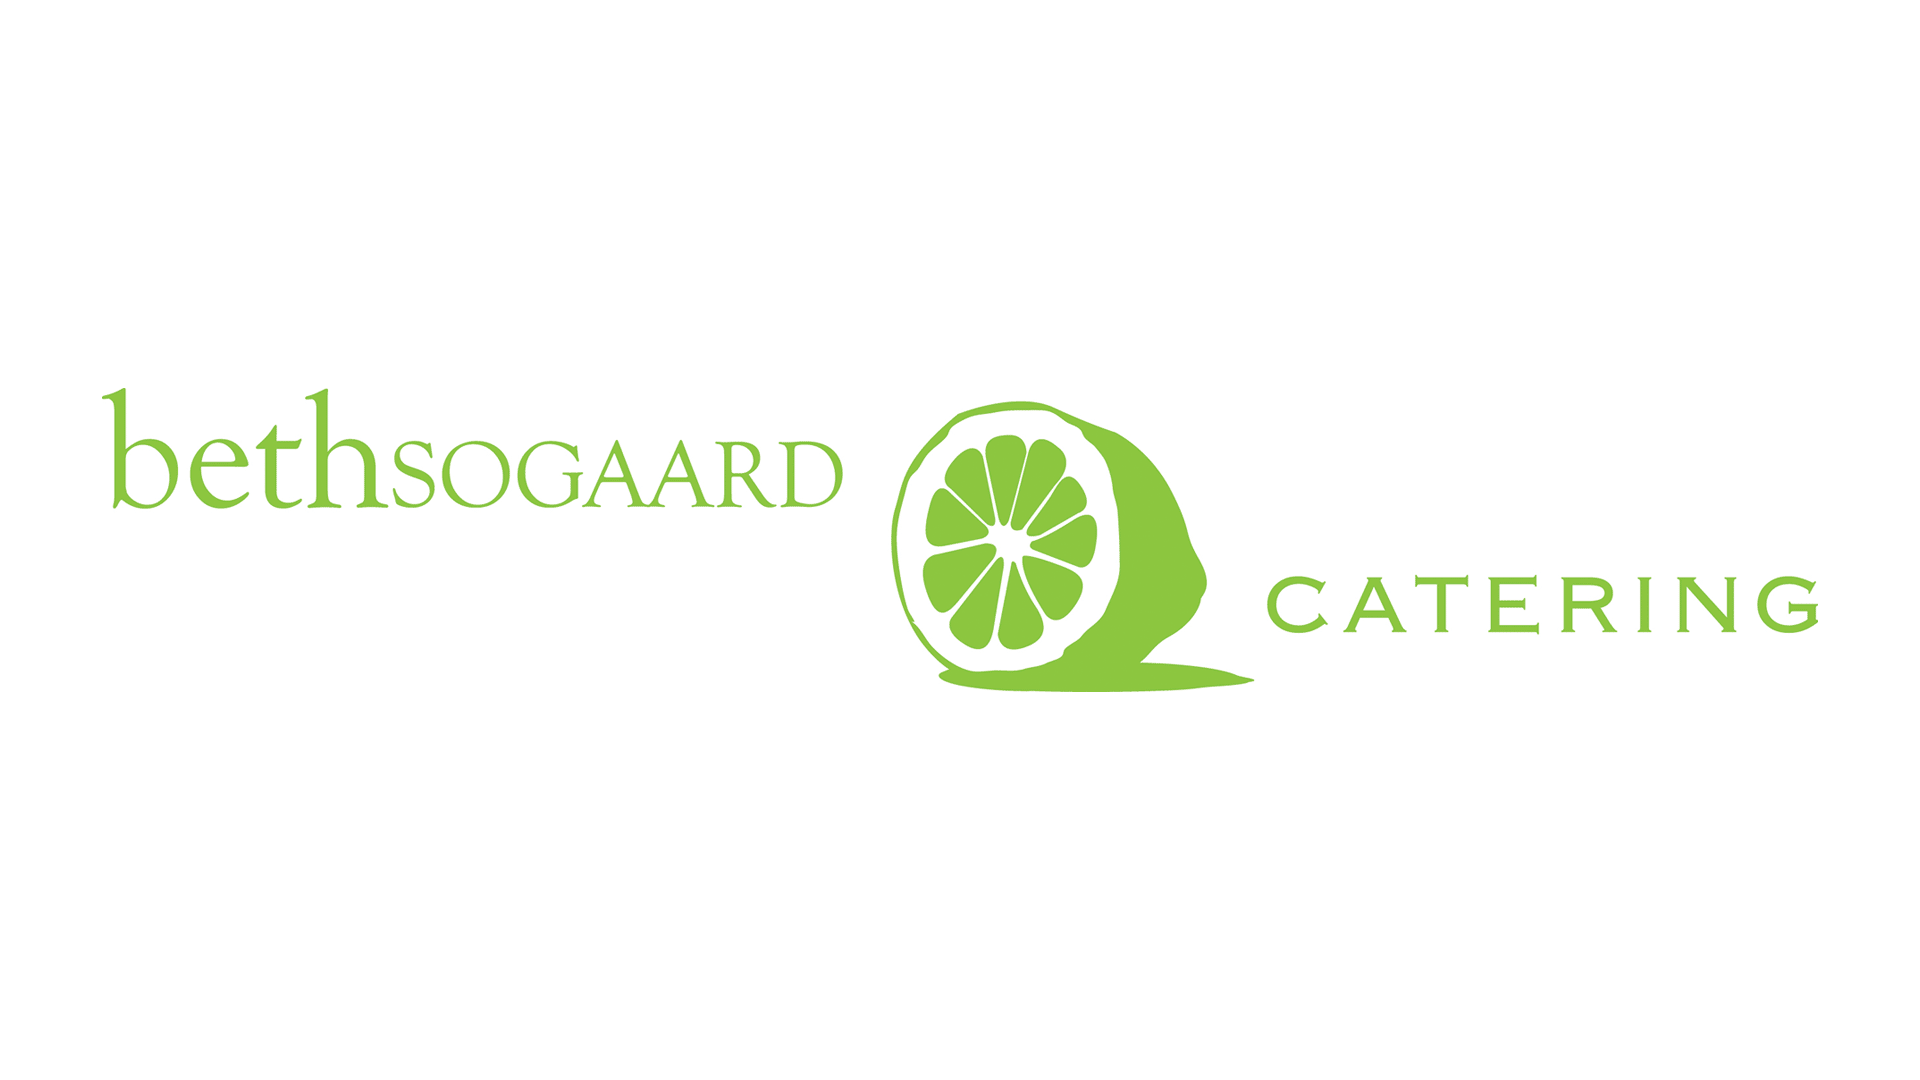 Beth Sogaard Catering